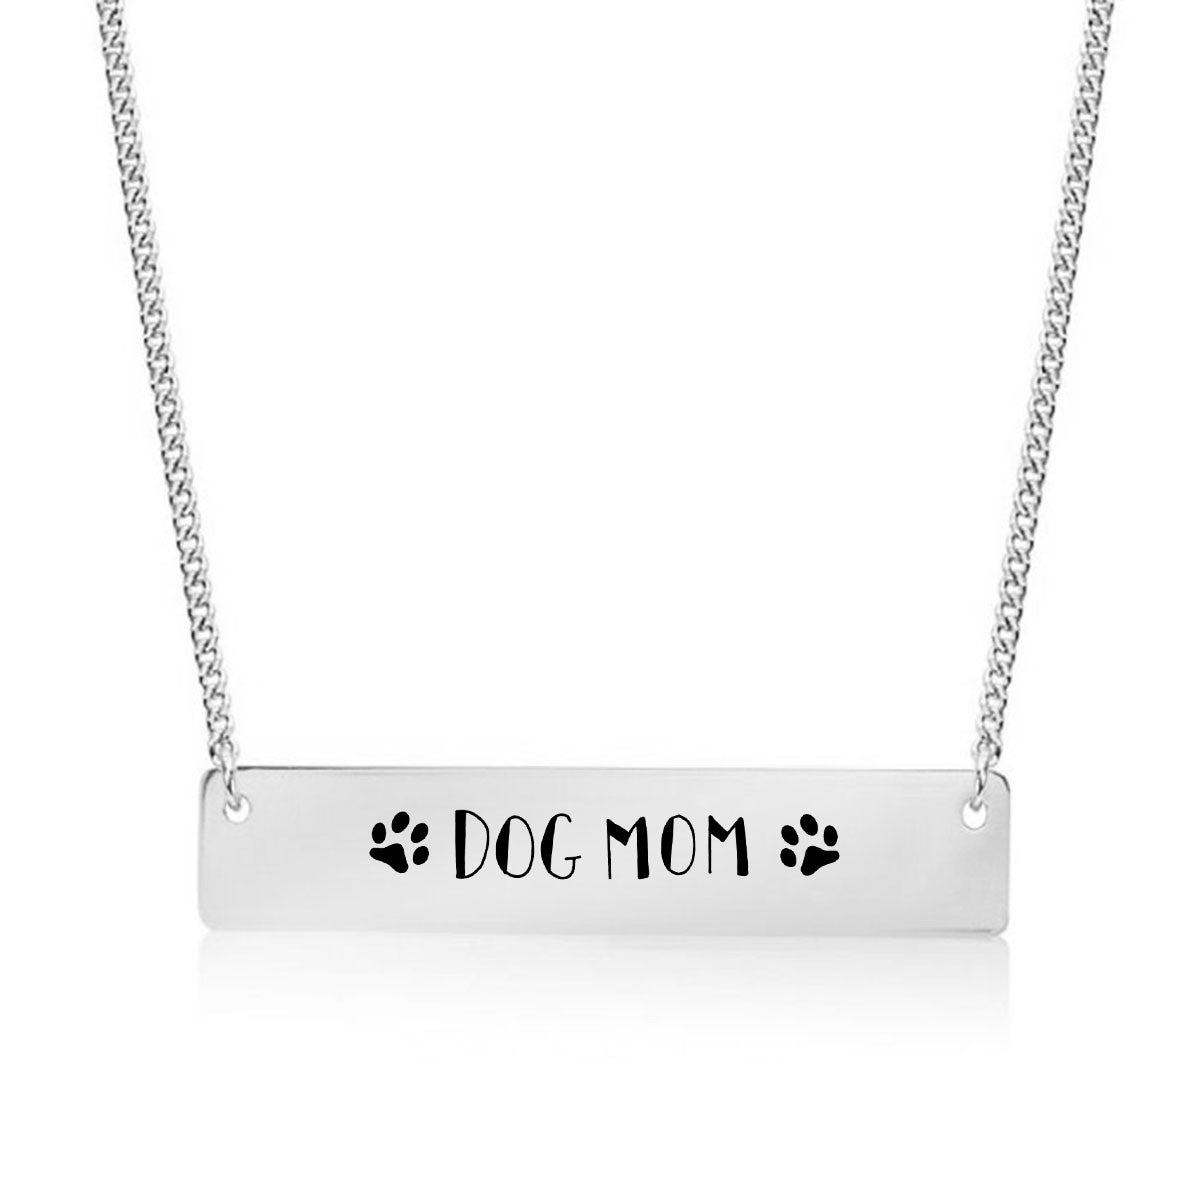 Dog Mom Gold / Silver Bar Necklace